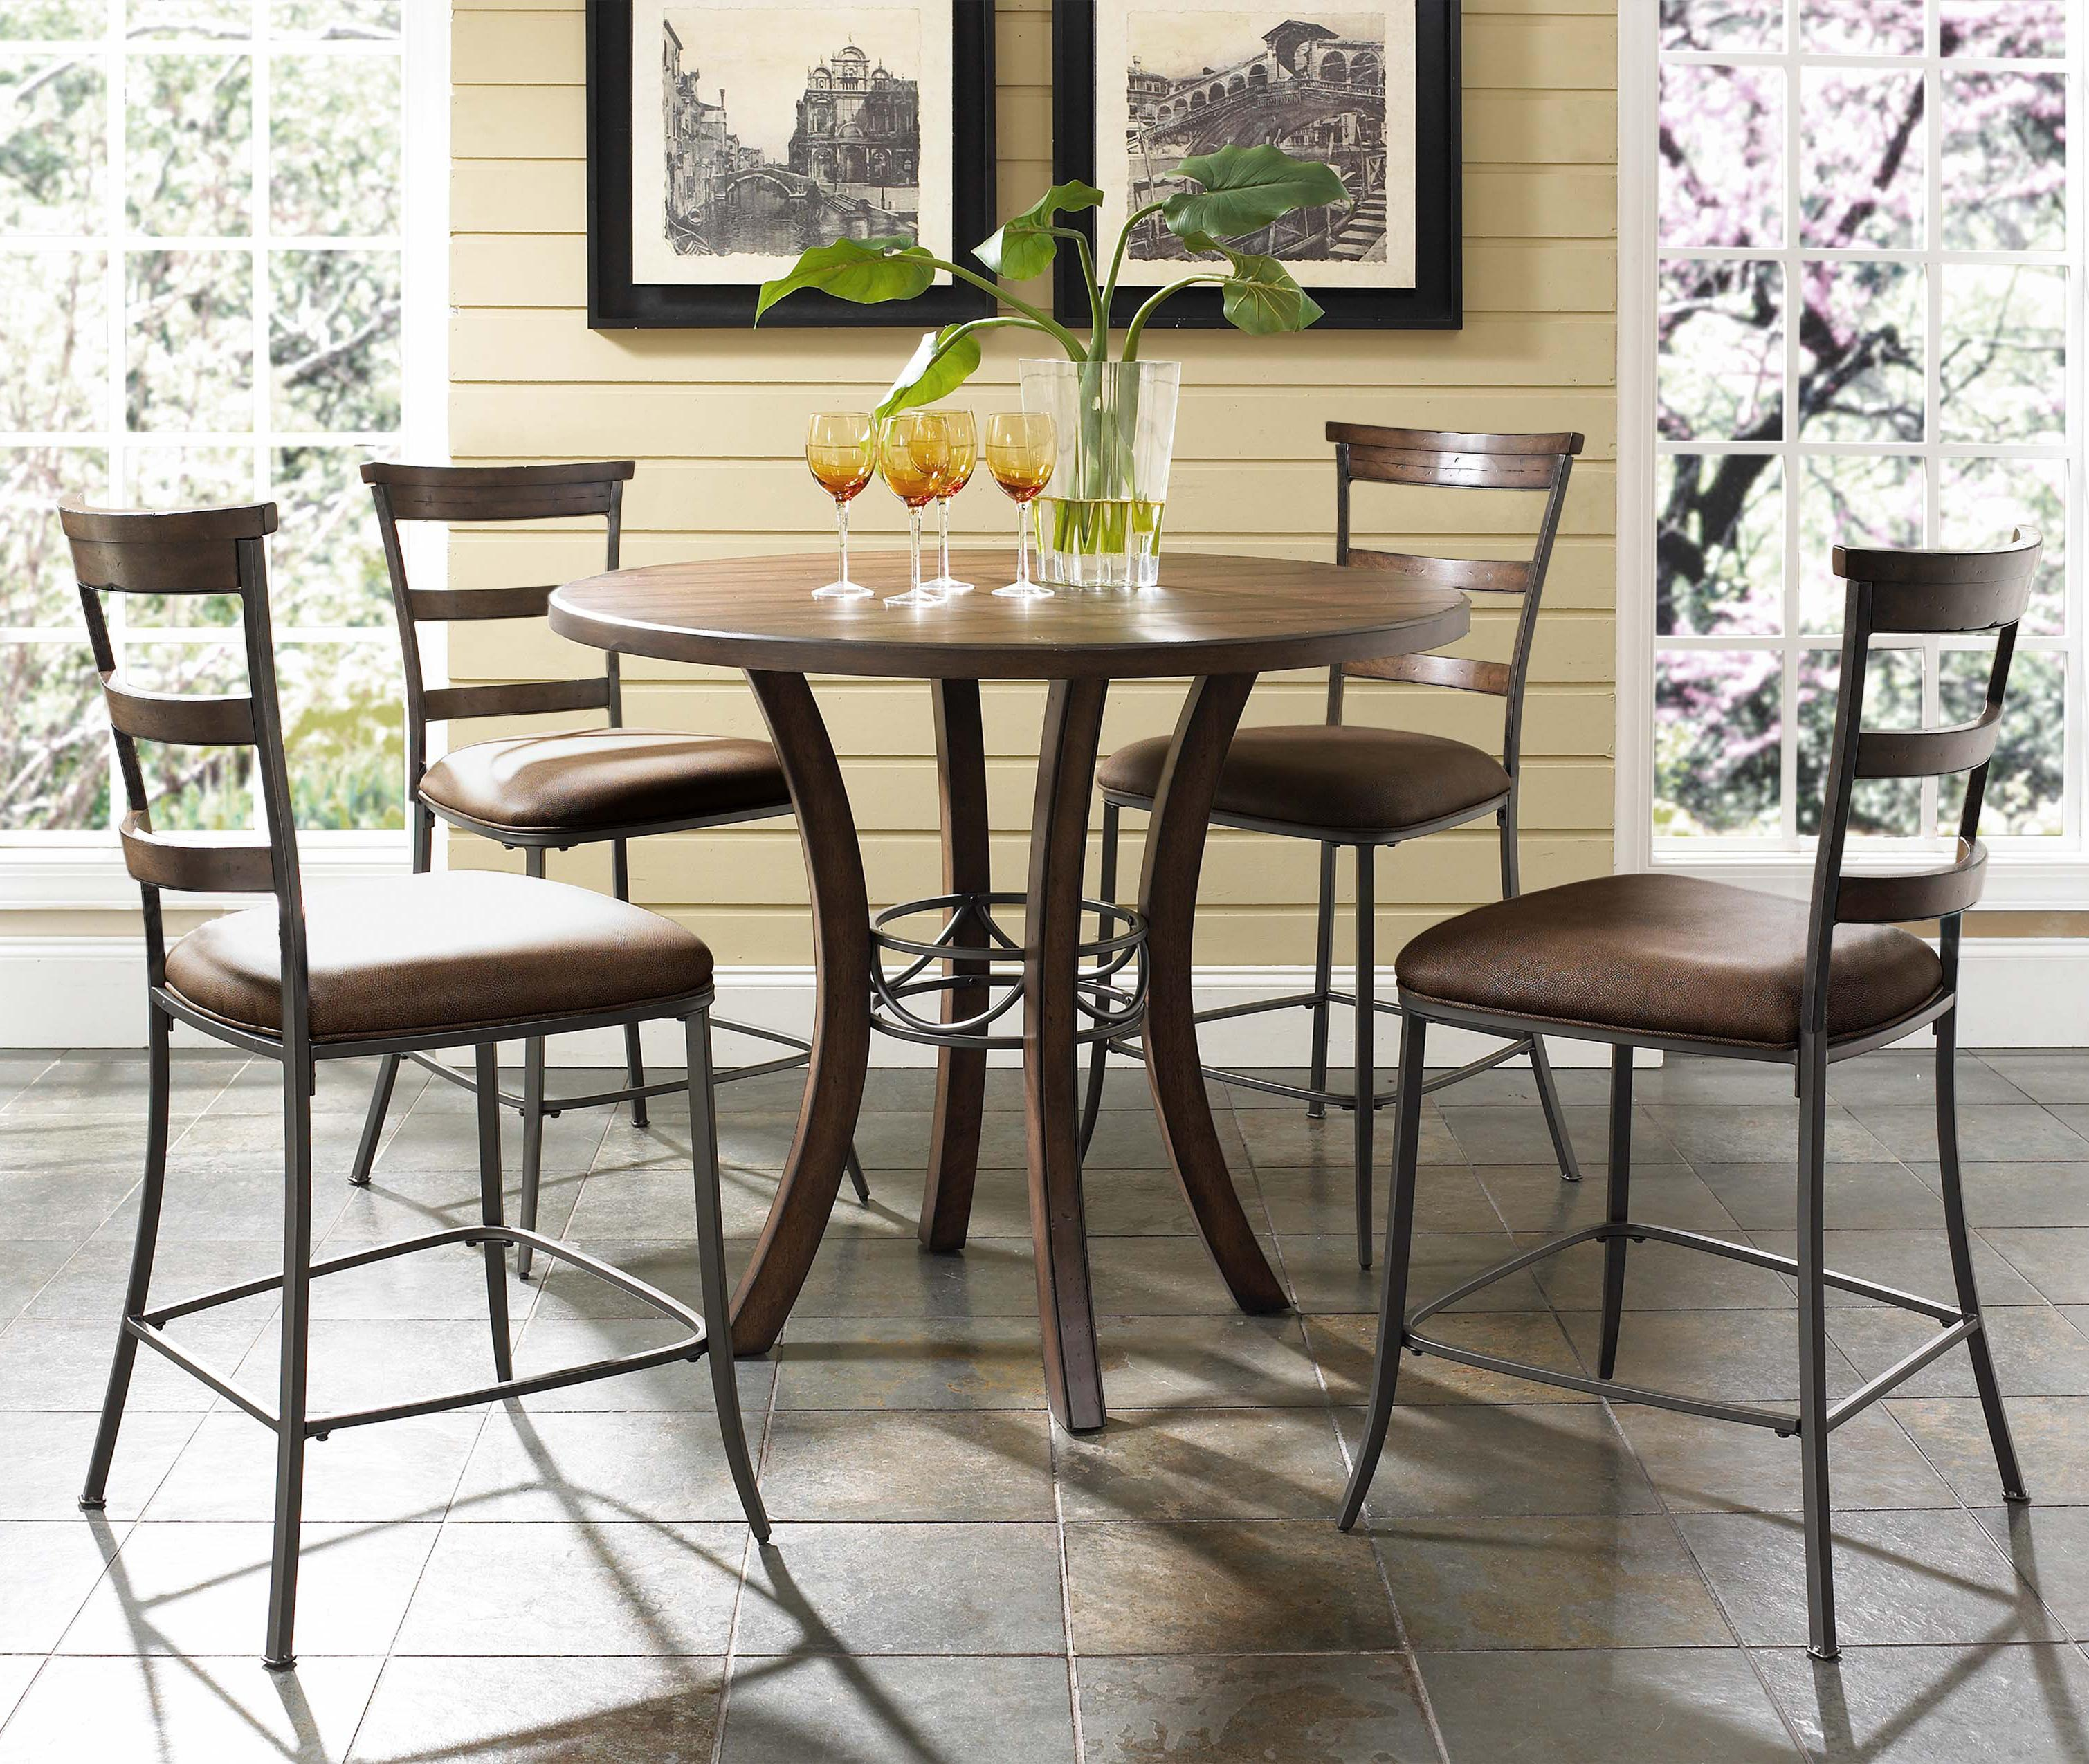 Hillsdale Cameron 5 Piece Round Counter Height Dining Set - Item Number: 4671CTBWS5